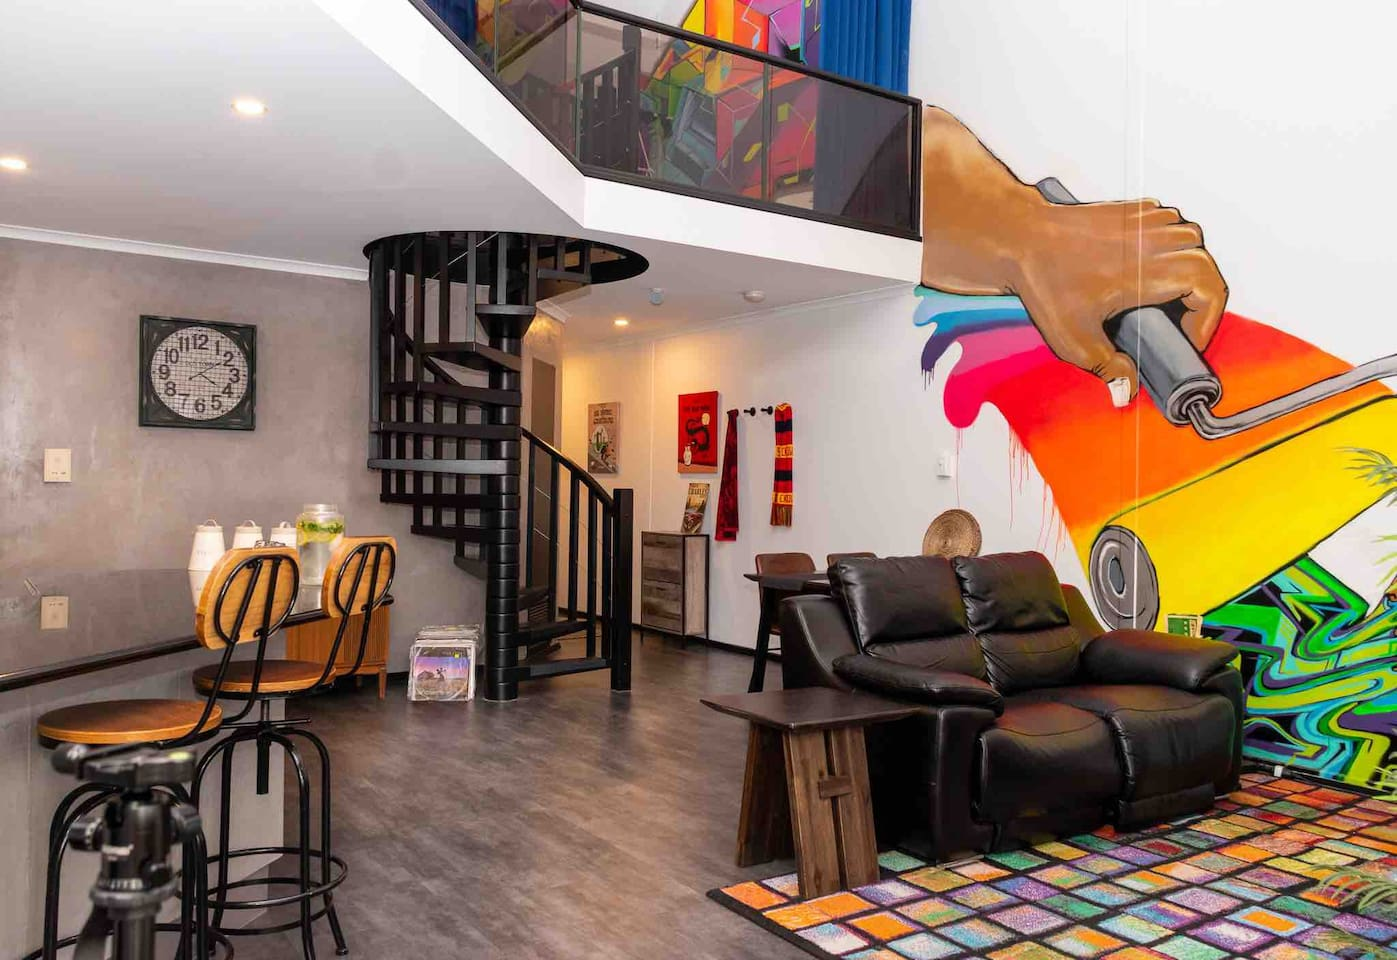 We love our open planned loft apartment with colourful streetart to brighten your day